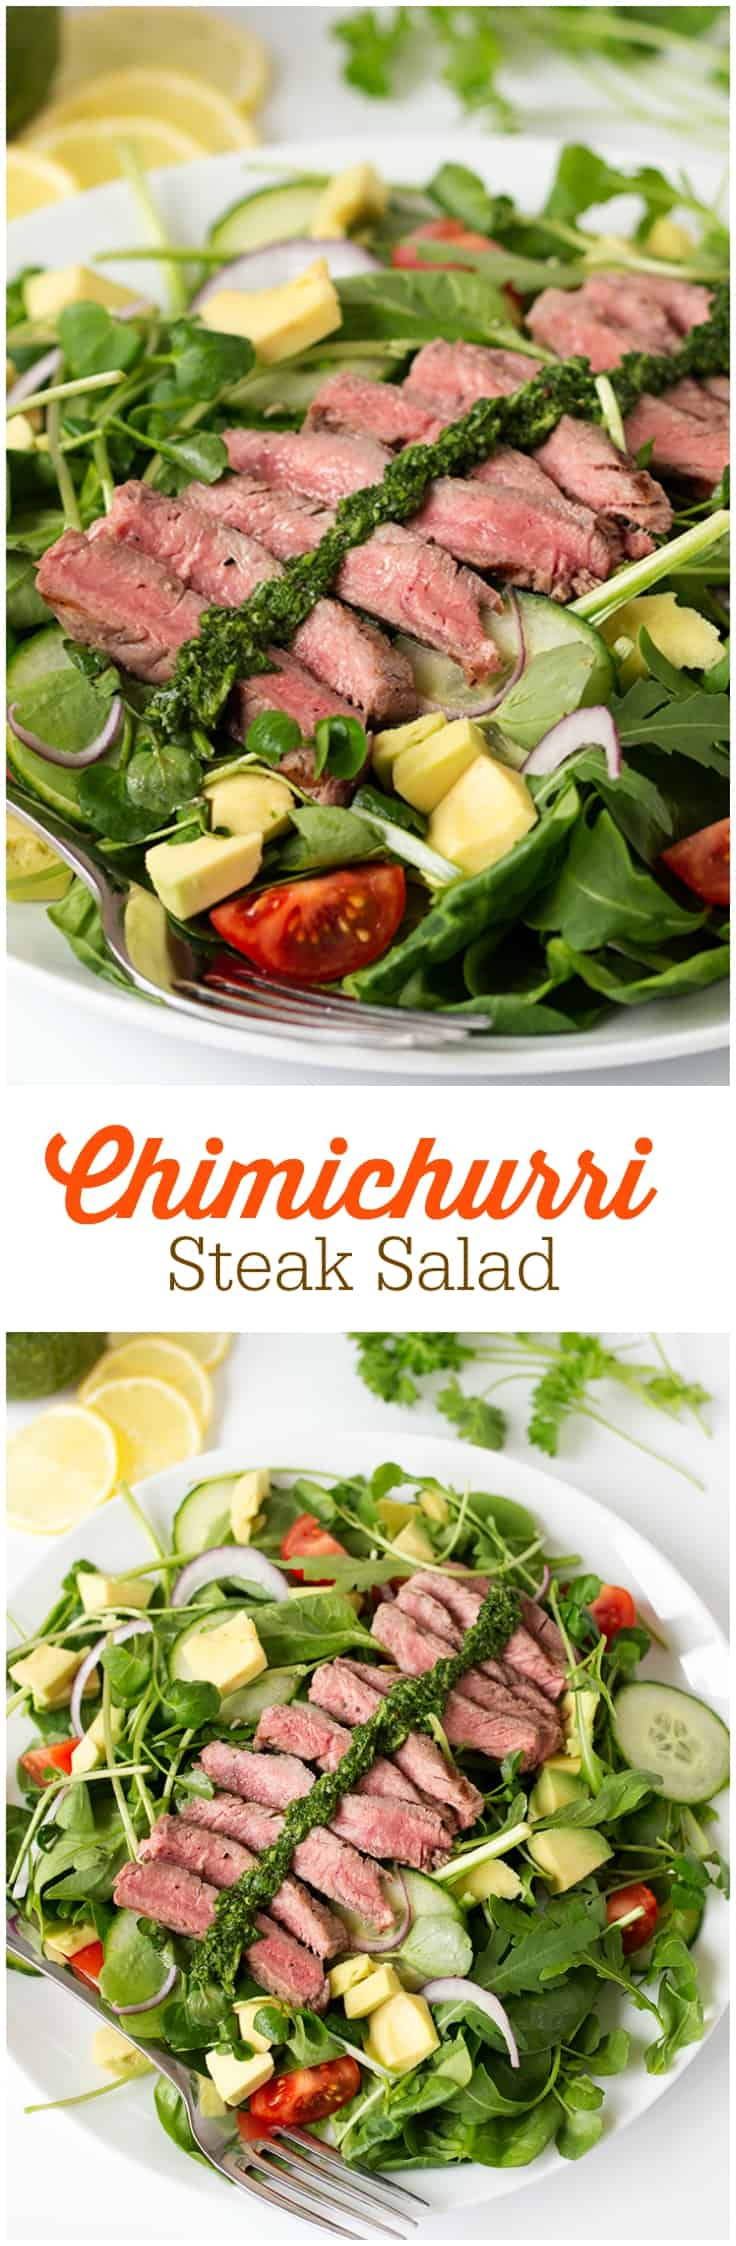 Chimichurri Steak Salad - Simply Stacie